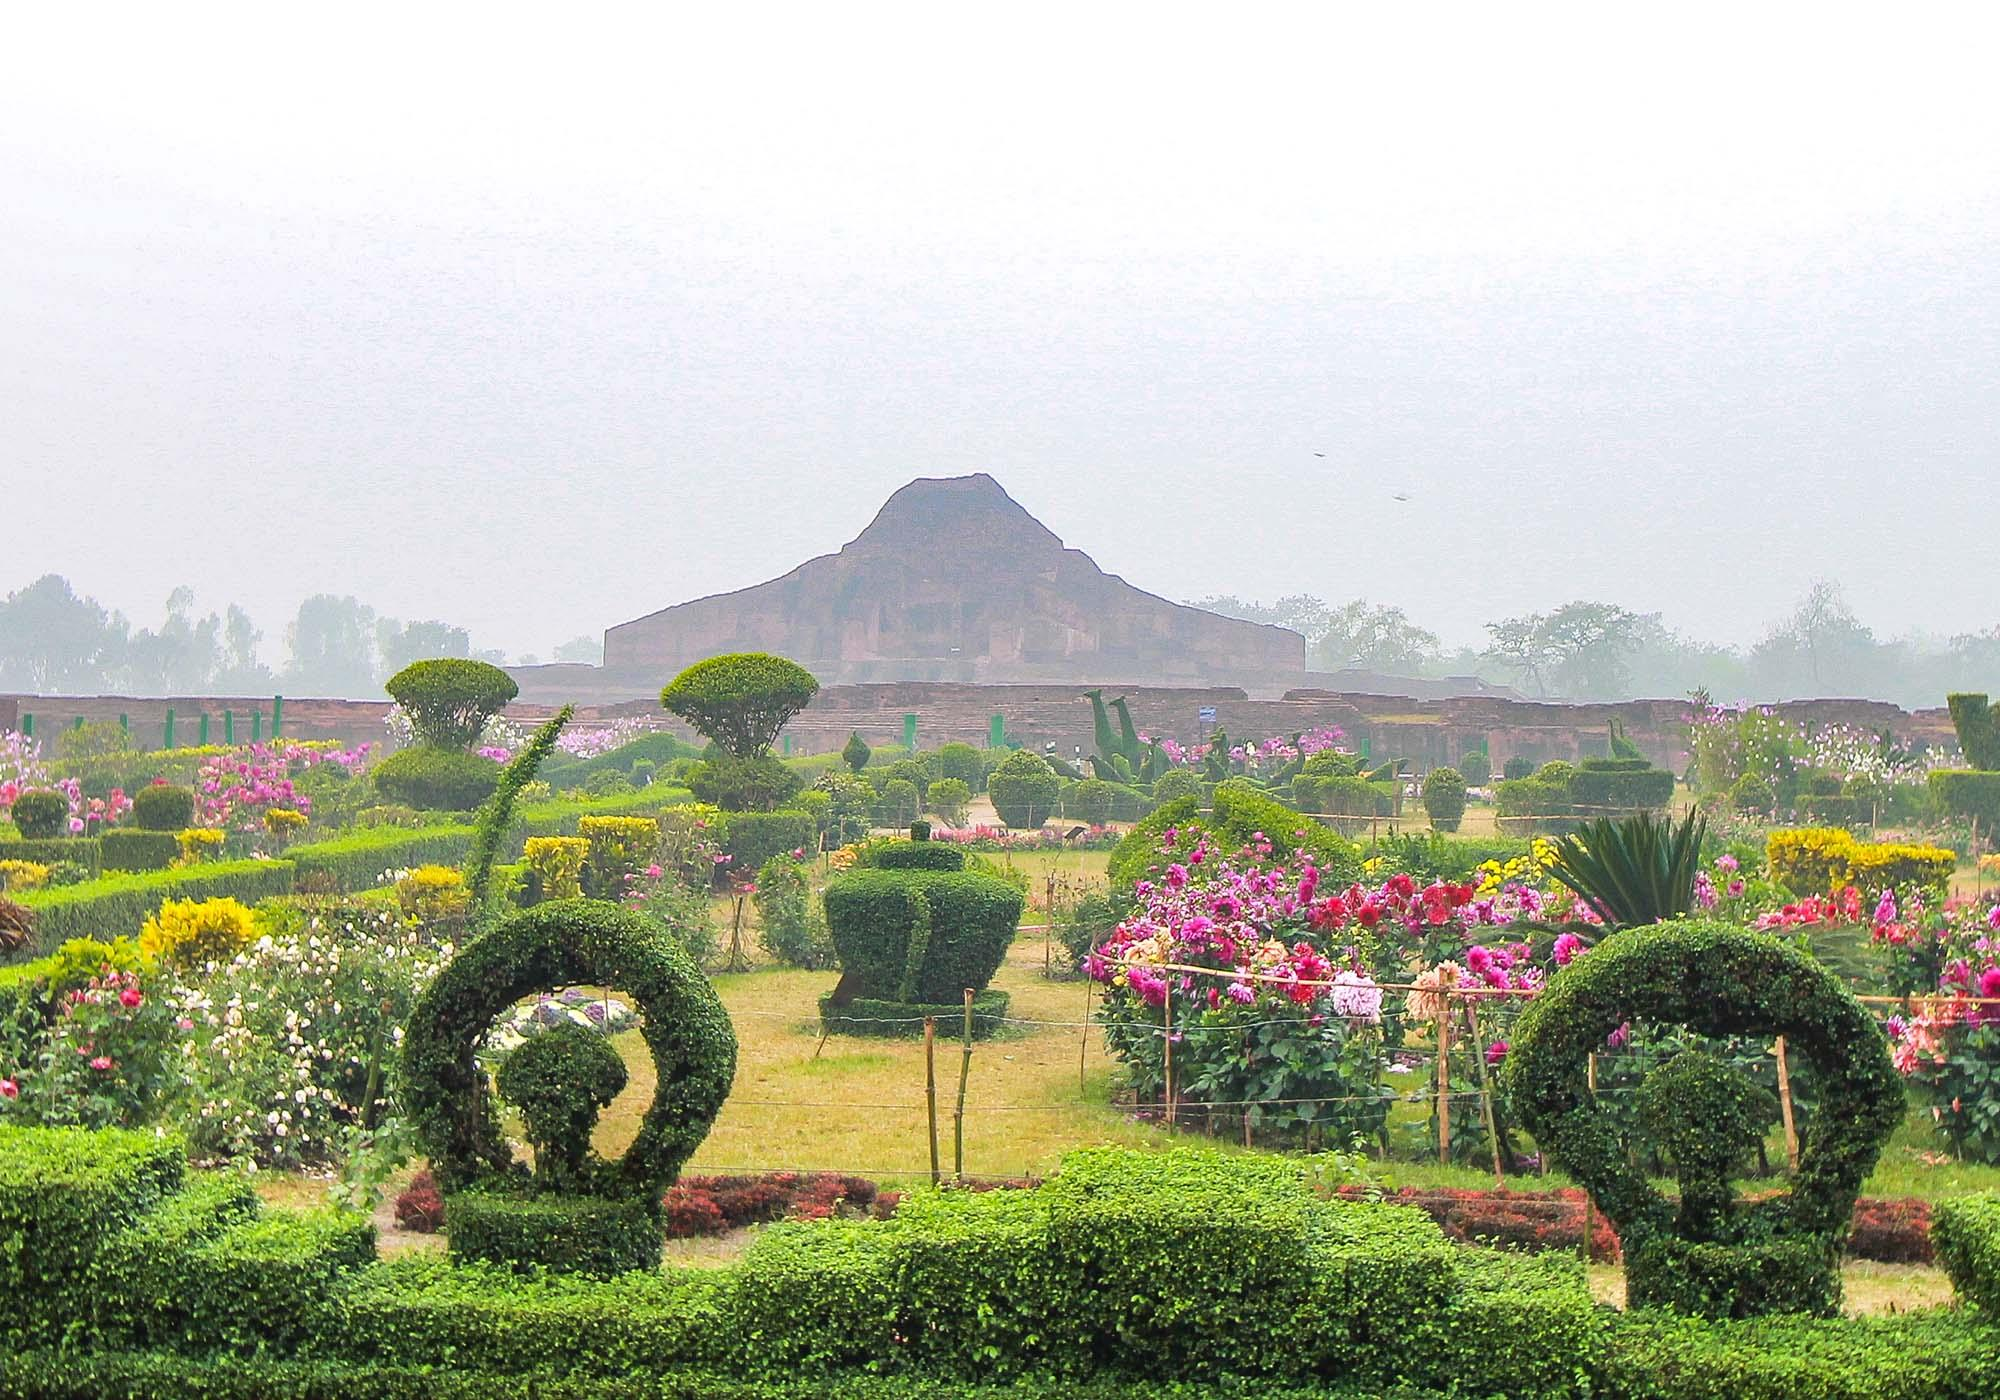 Vibrant gardens around the Paharpur site continue the Buddhist tradition of respecting the natural environment. – © Julfiker Ahmed